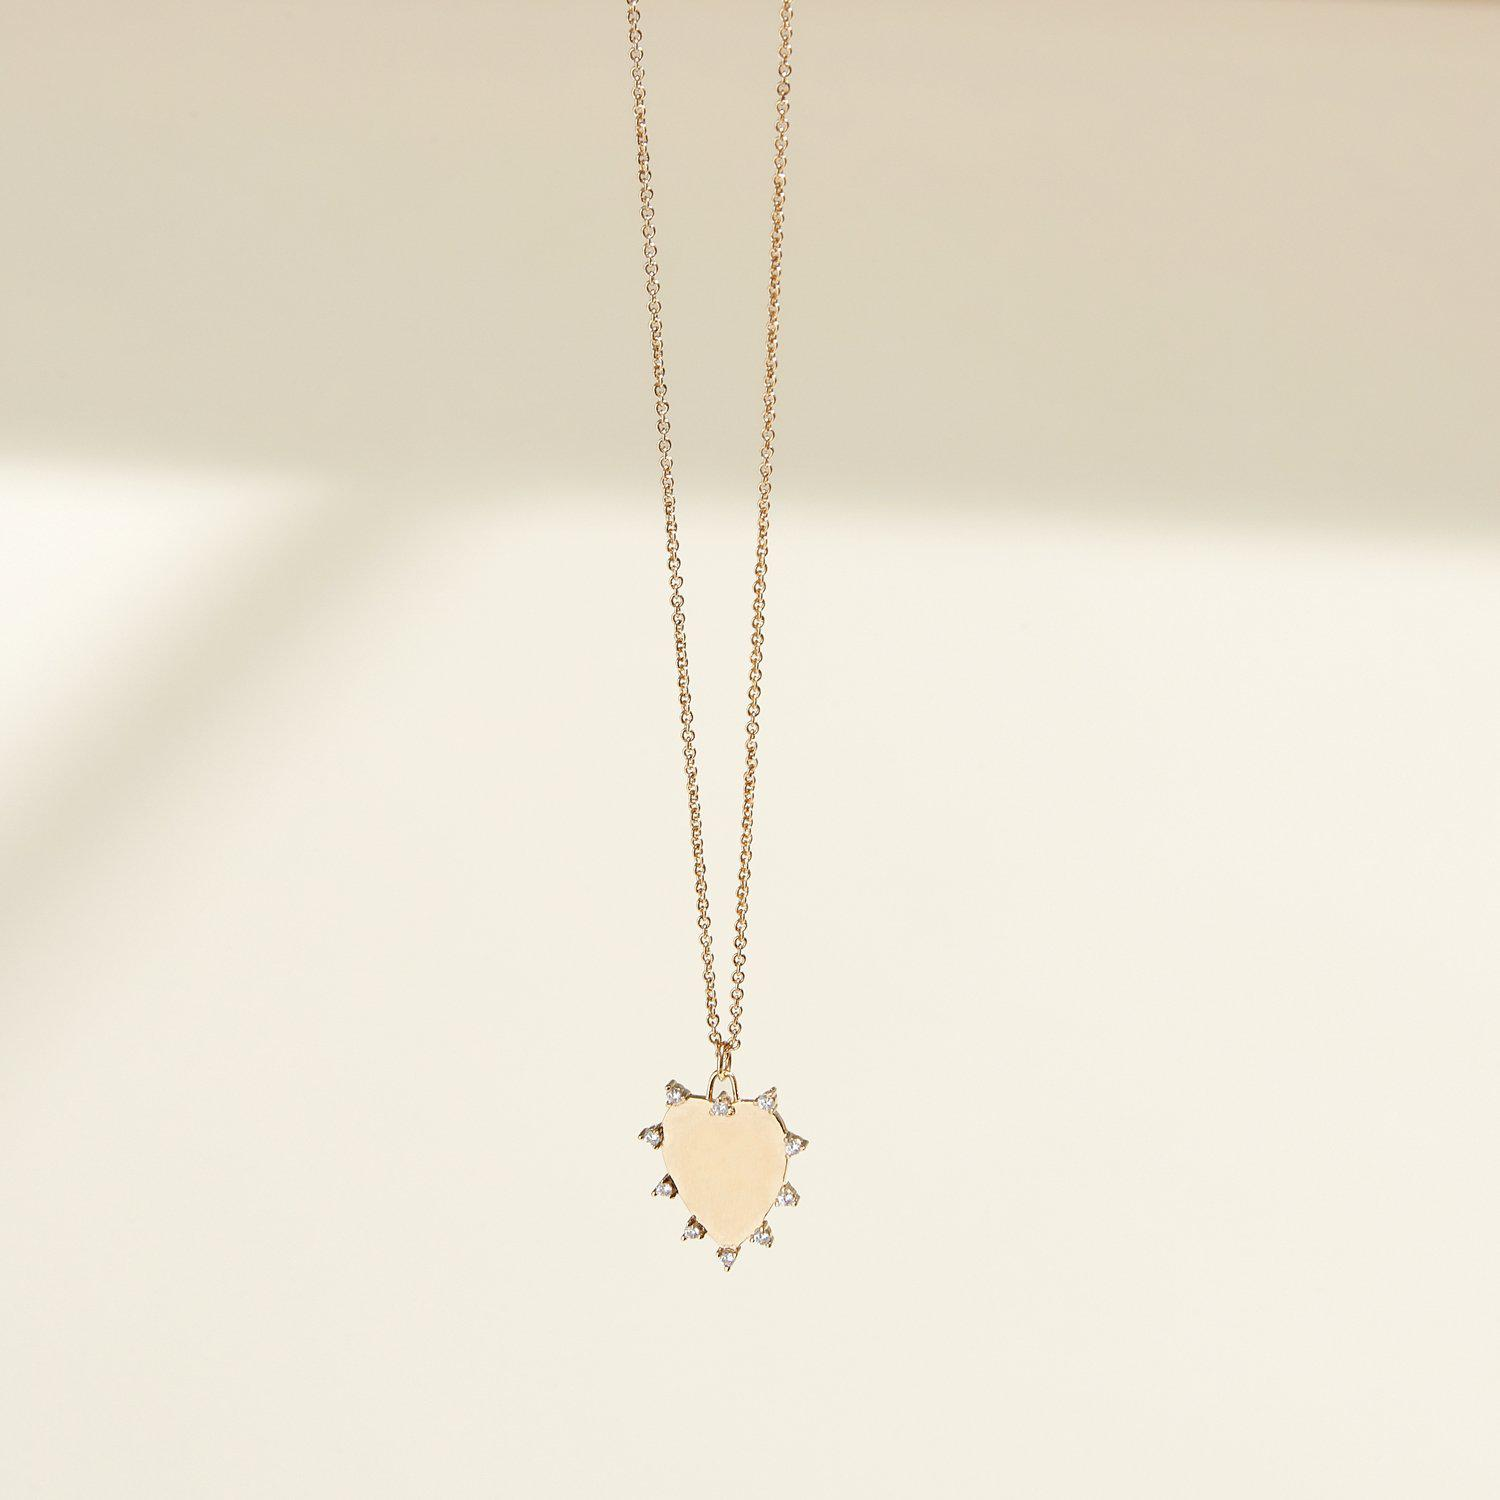 Everlasting Love Necklace Gold